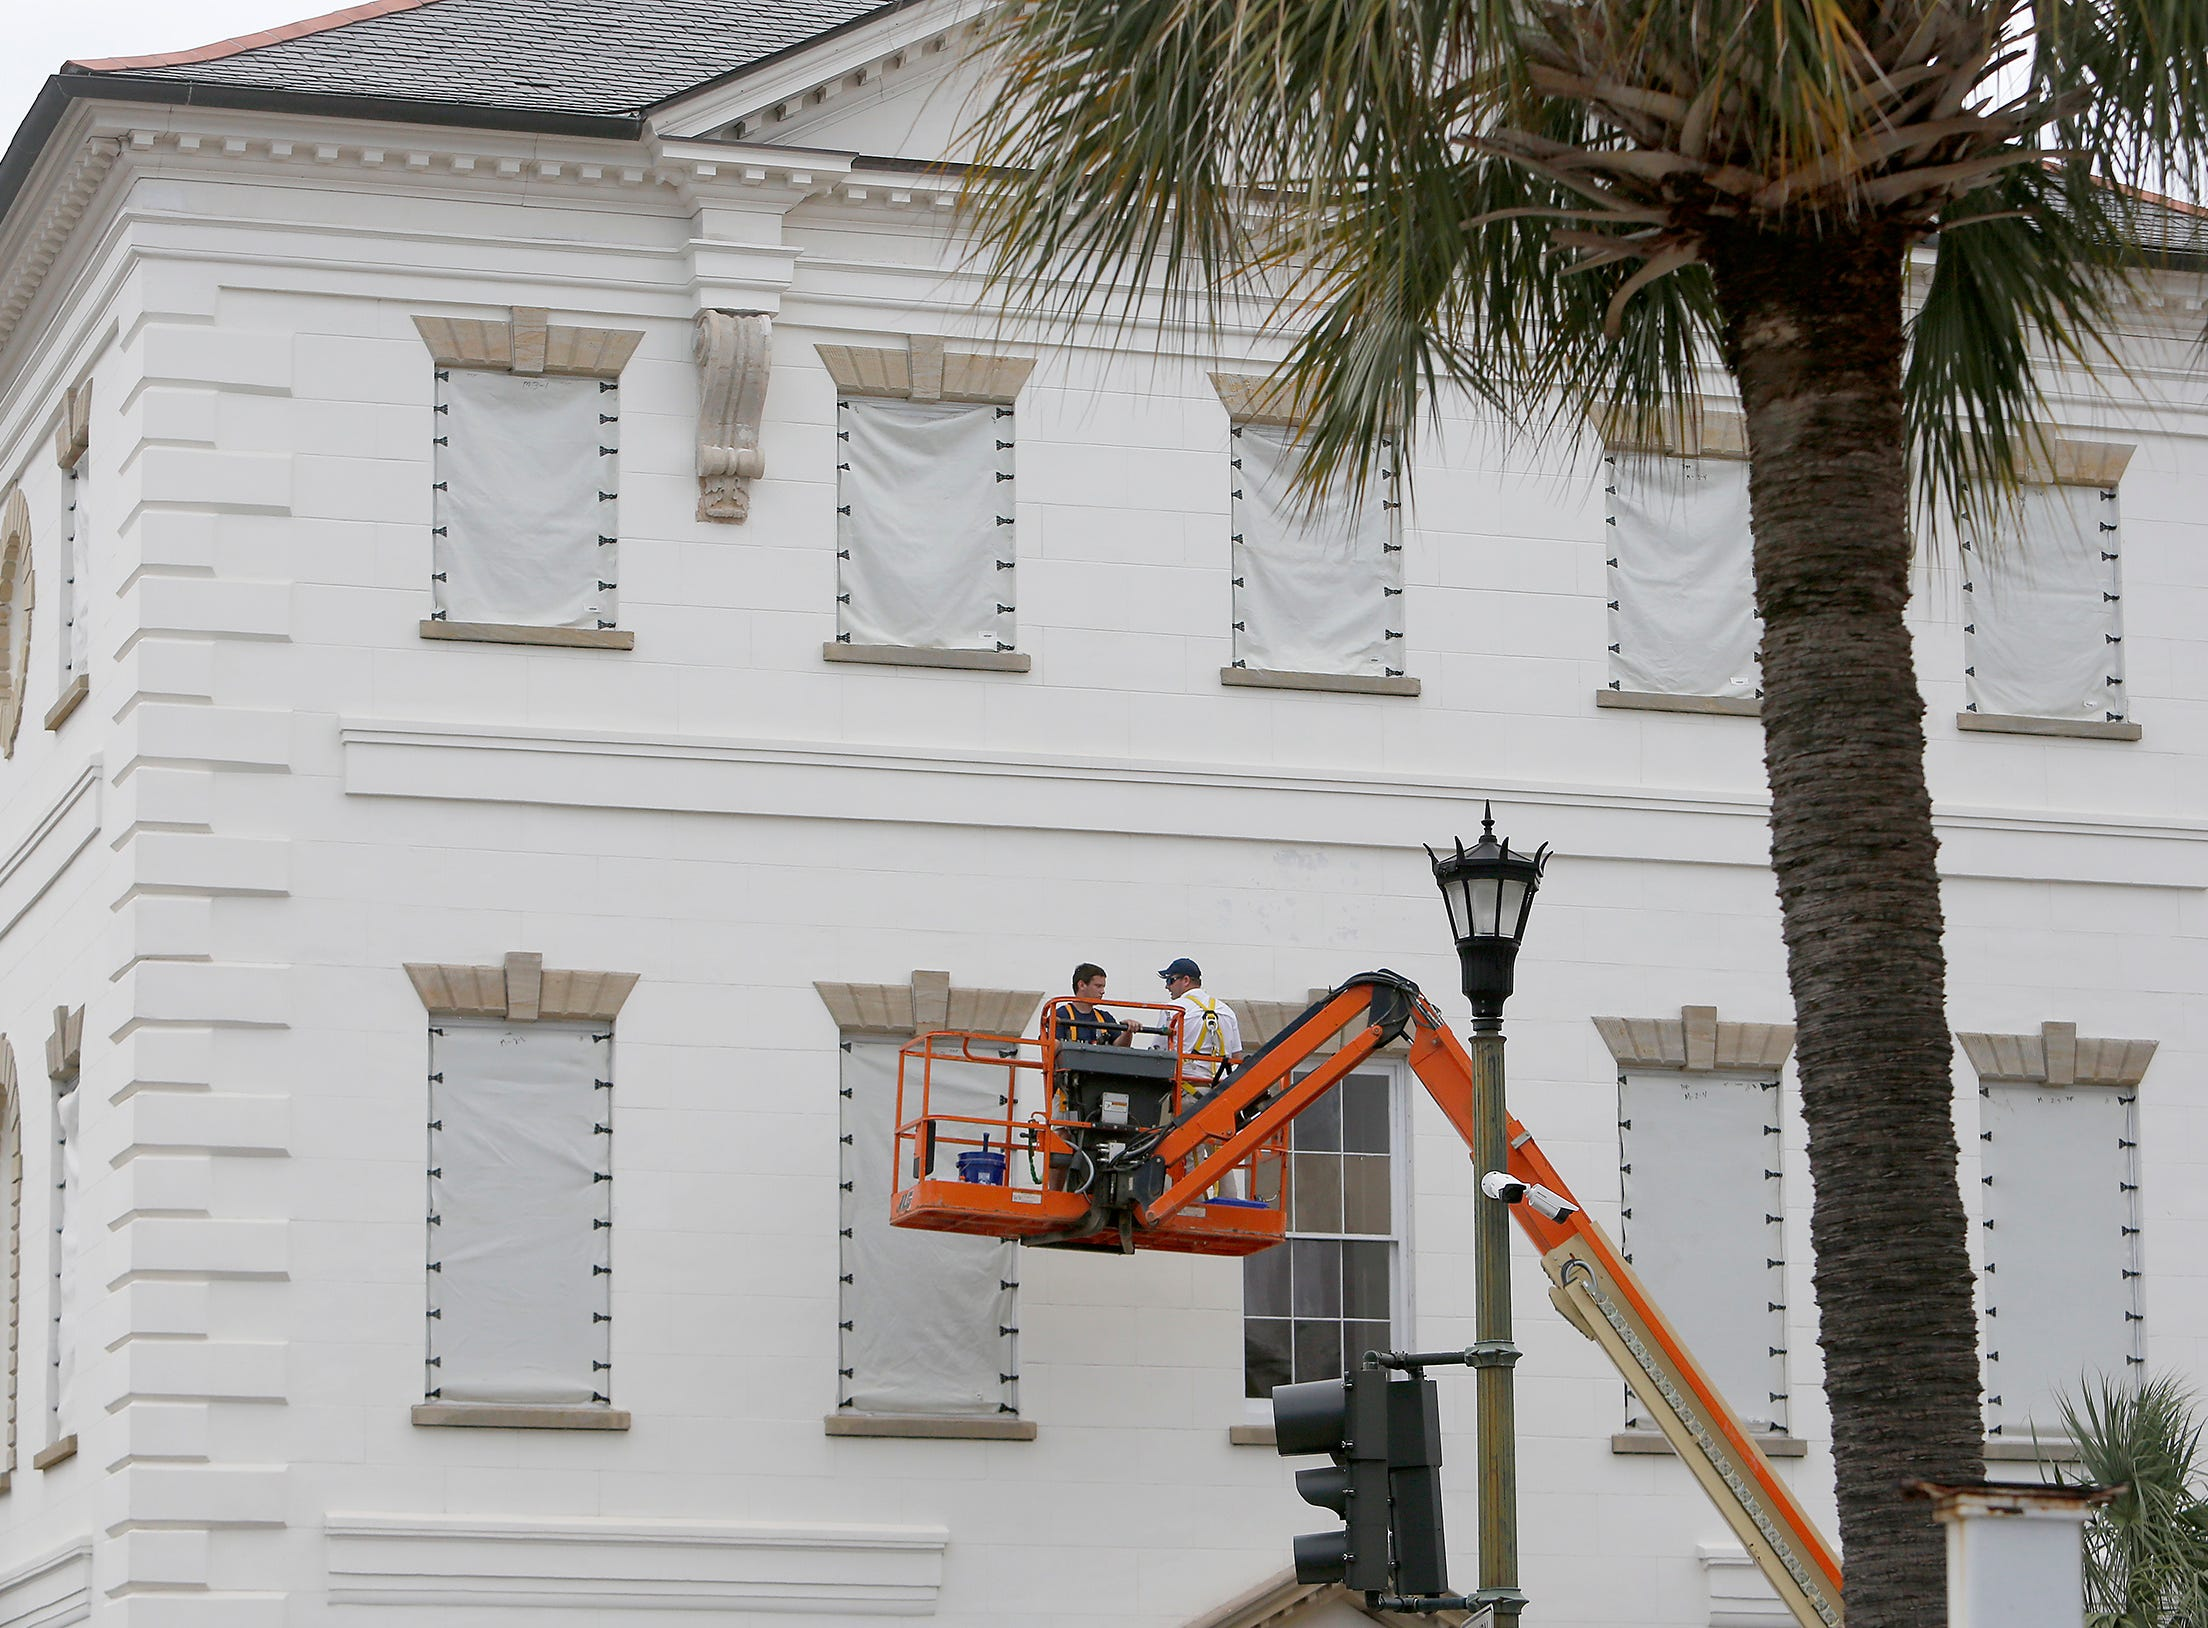 Workers cover the windows of the historic Charleston County Courthouse in Charleston, S.C., in preparation for the advancing Hurricane Florence Tuesday, Sept. 11, 2018.